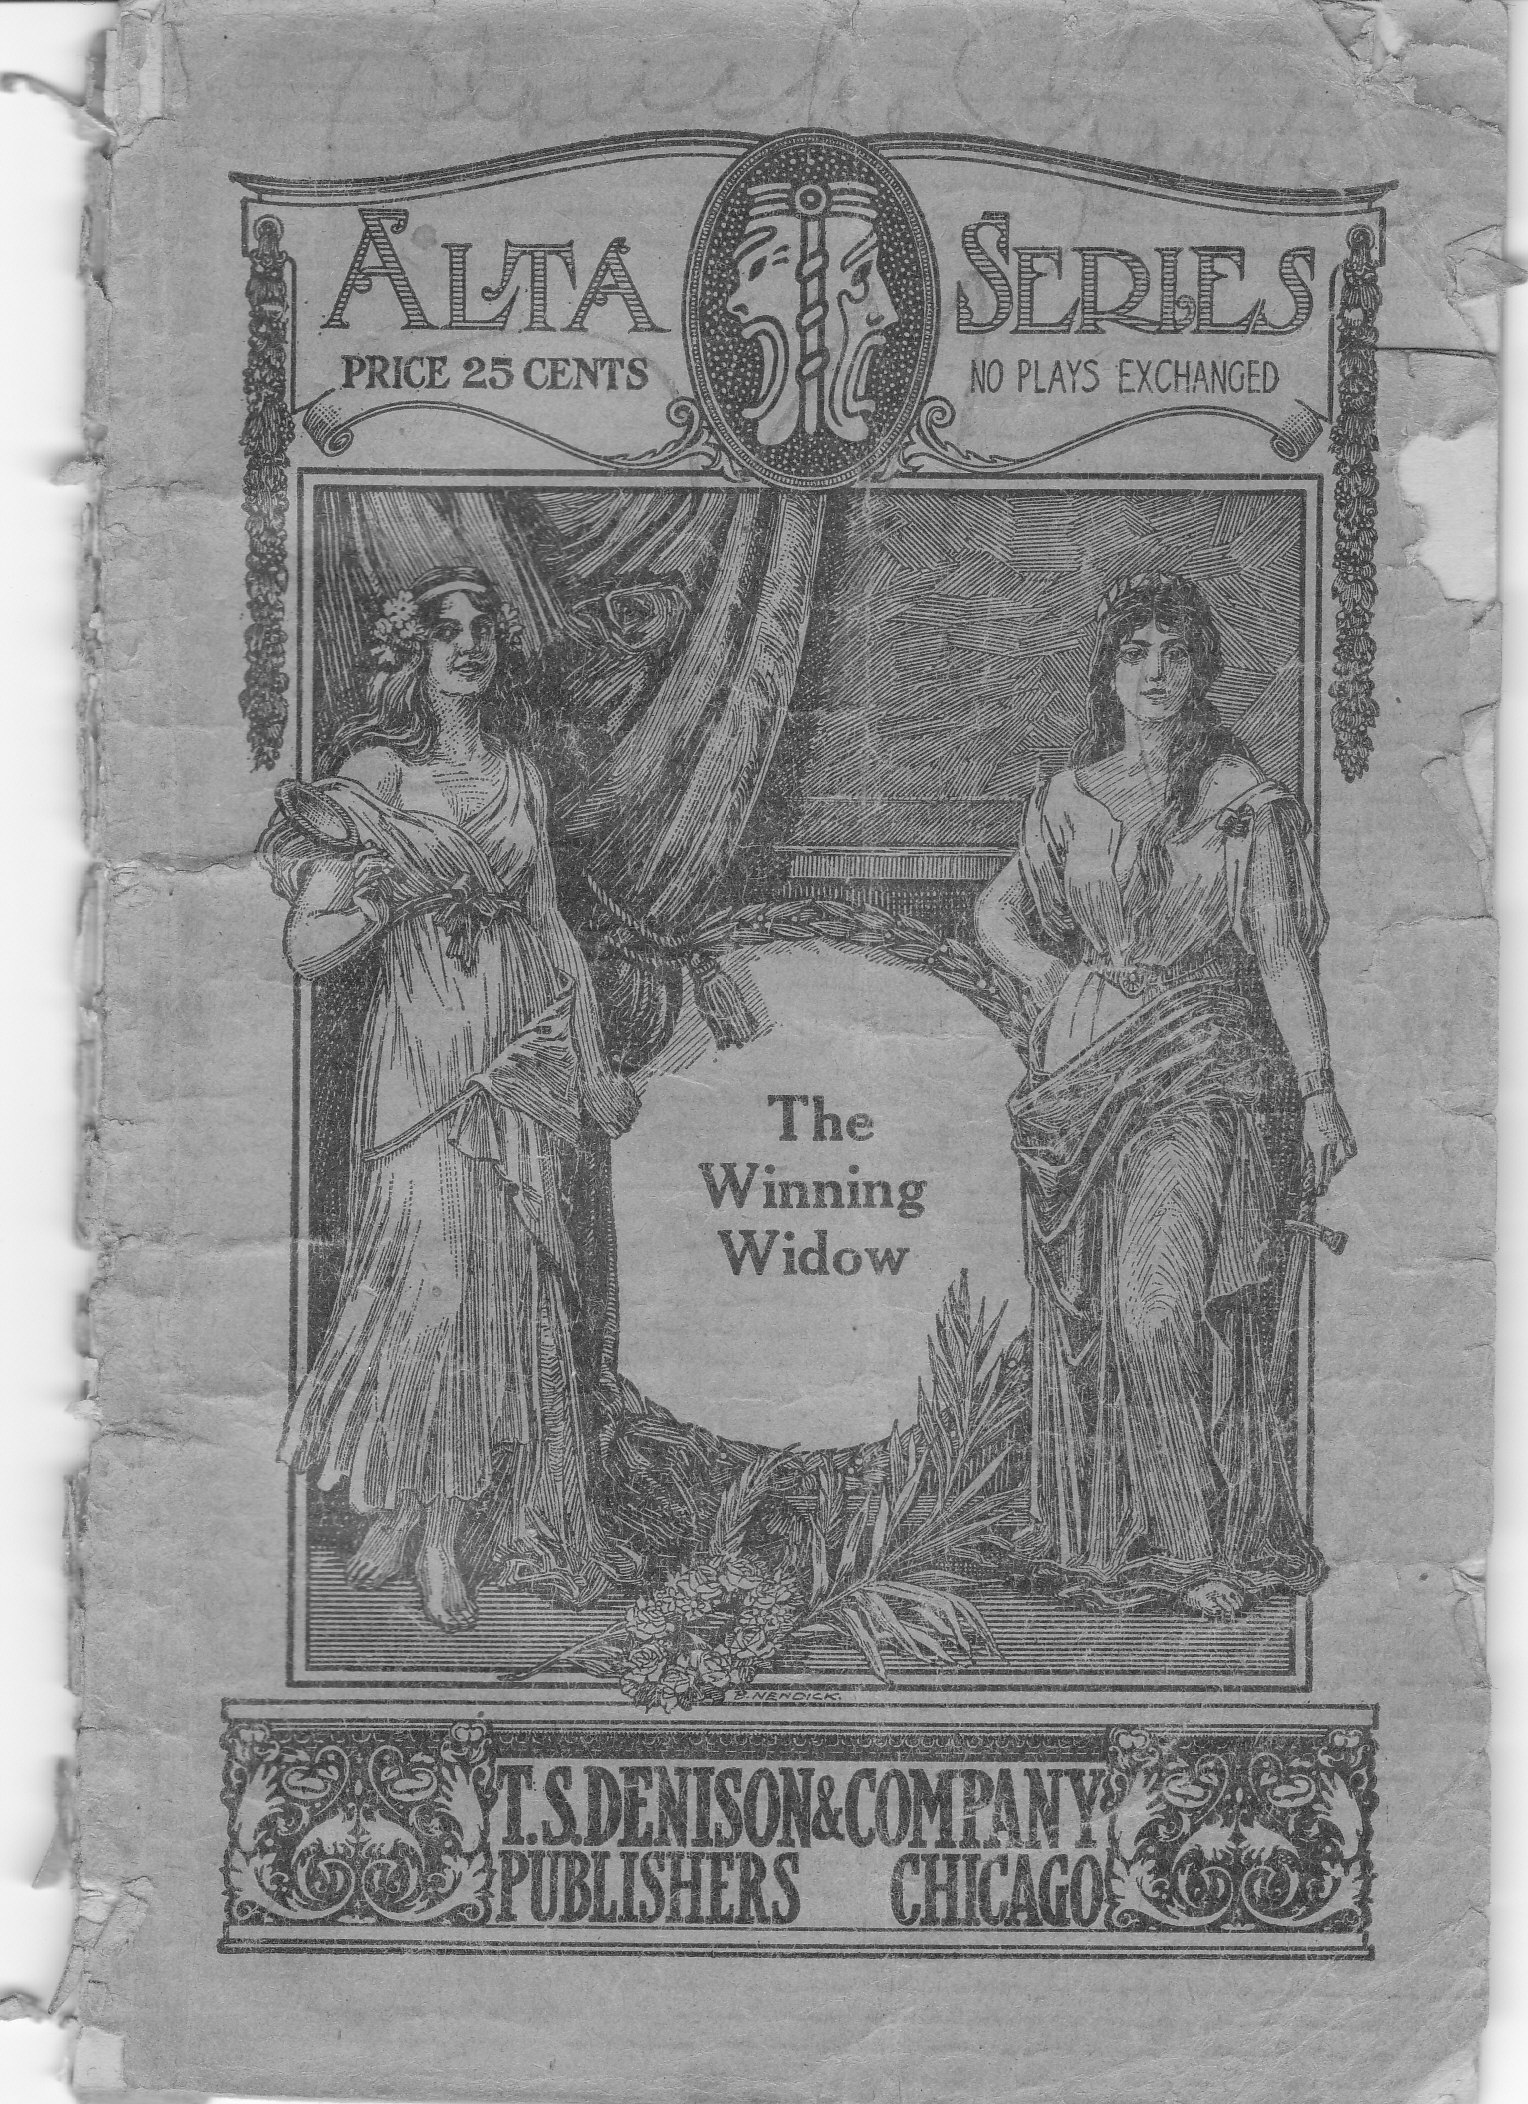 The Winning Widow-A Parlor Comedy 1916